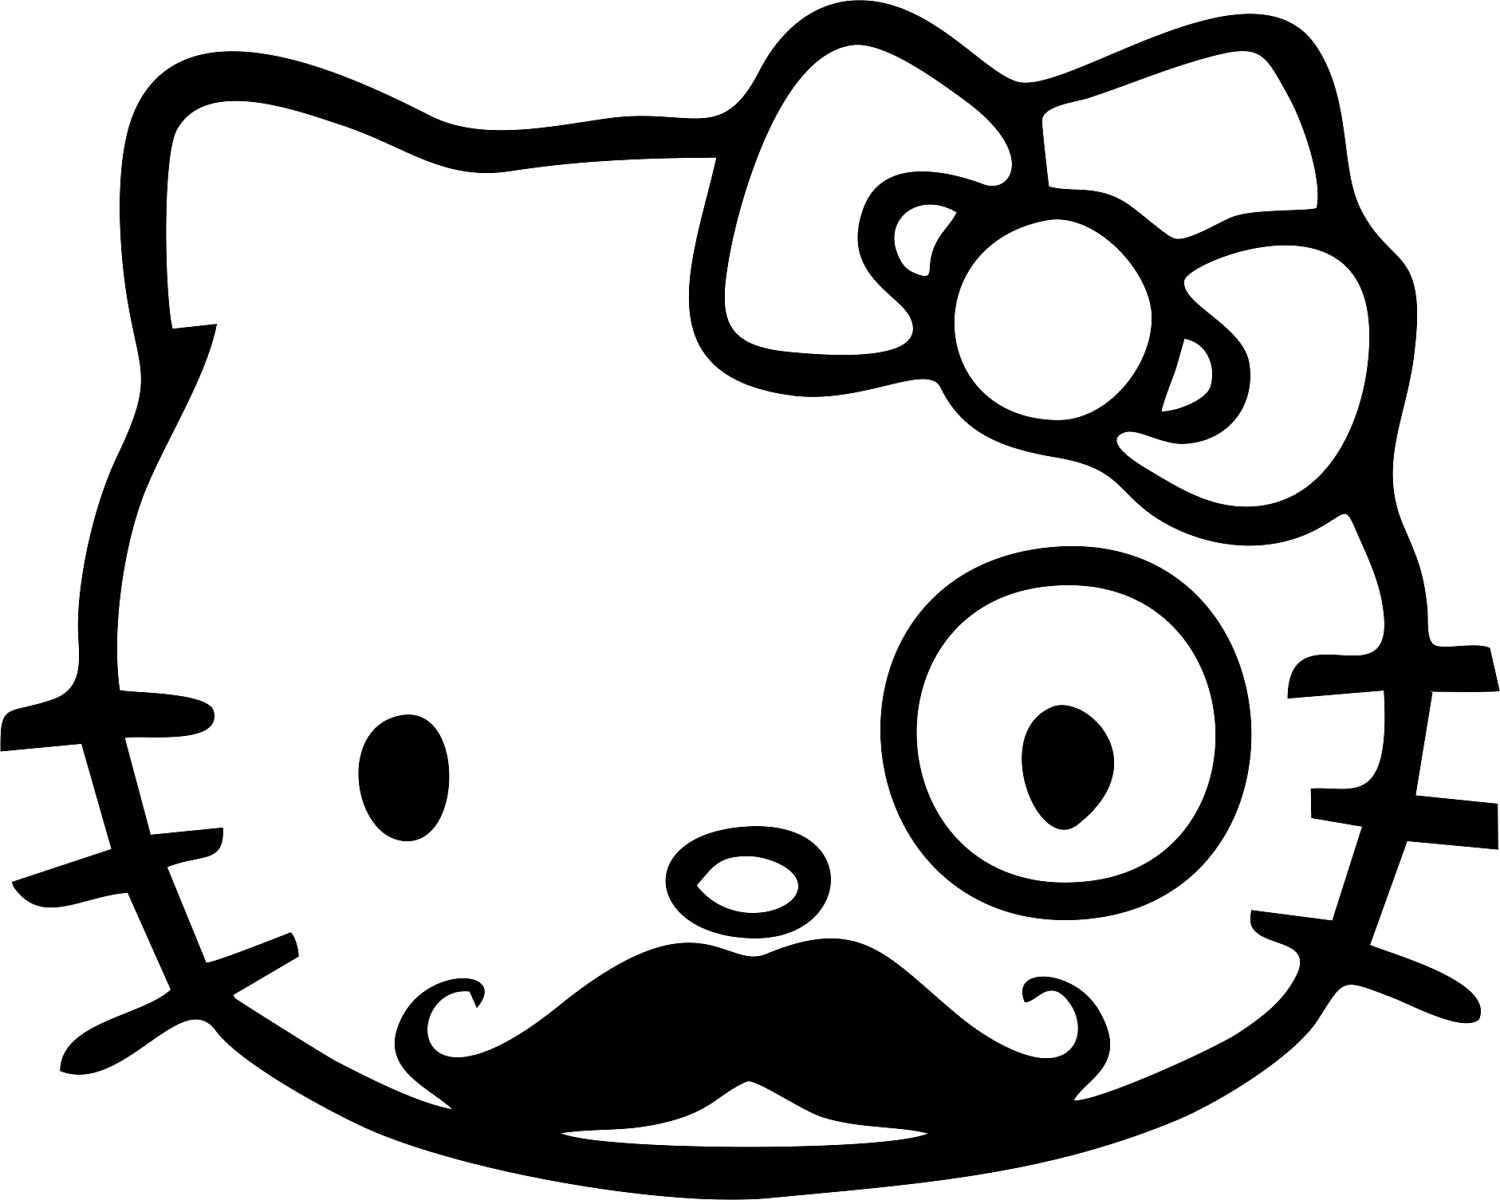 mustache coloring page free mustache clipart download free clip art on owipscom page mustache coloring